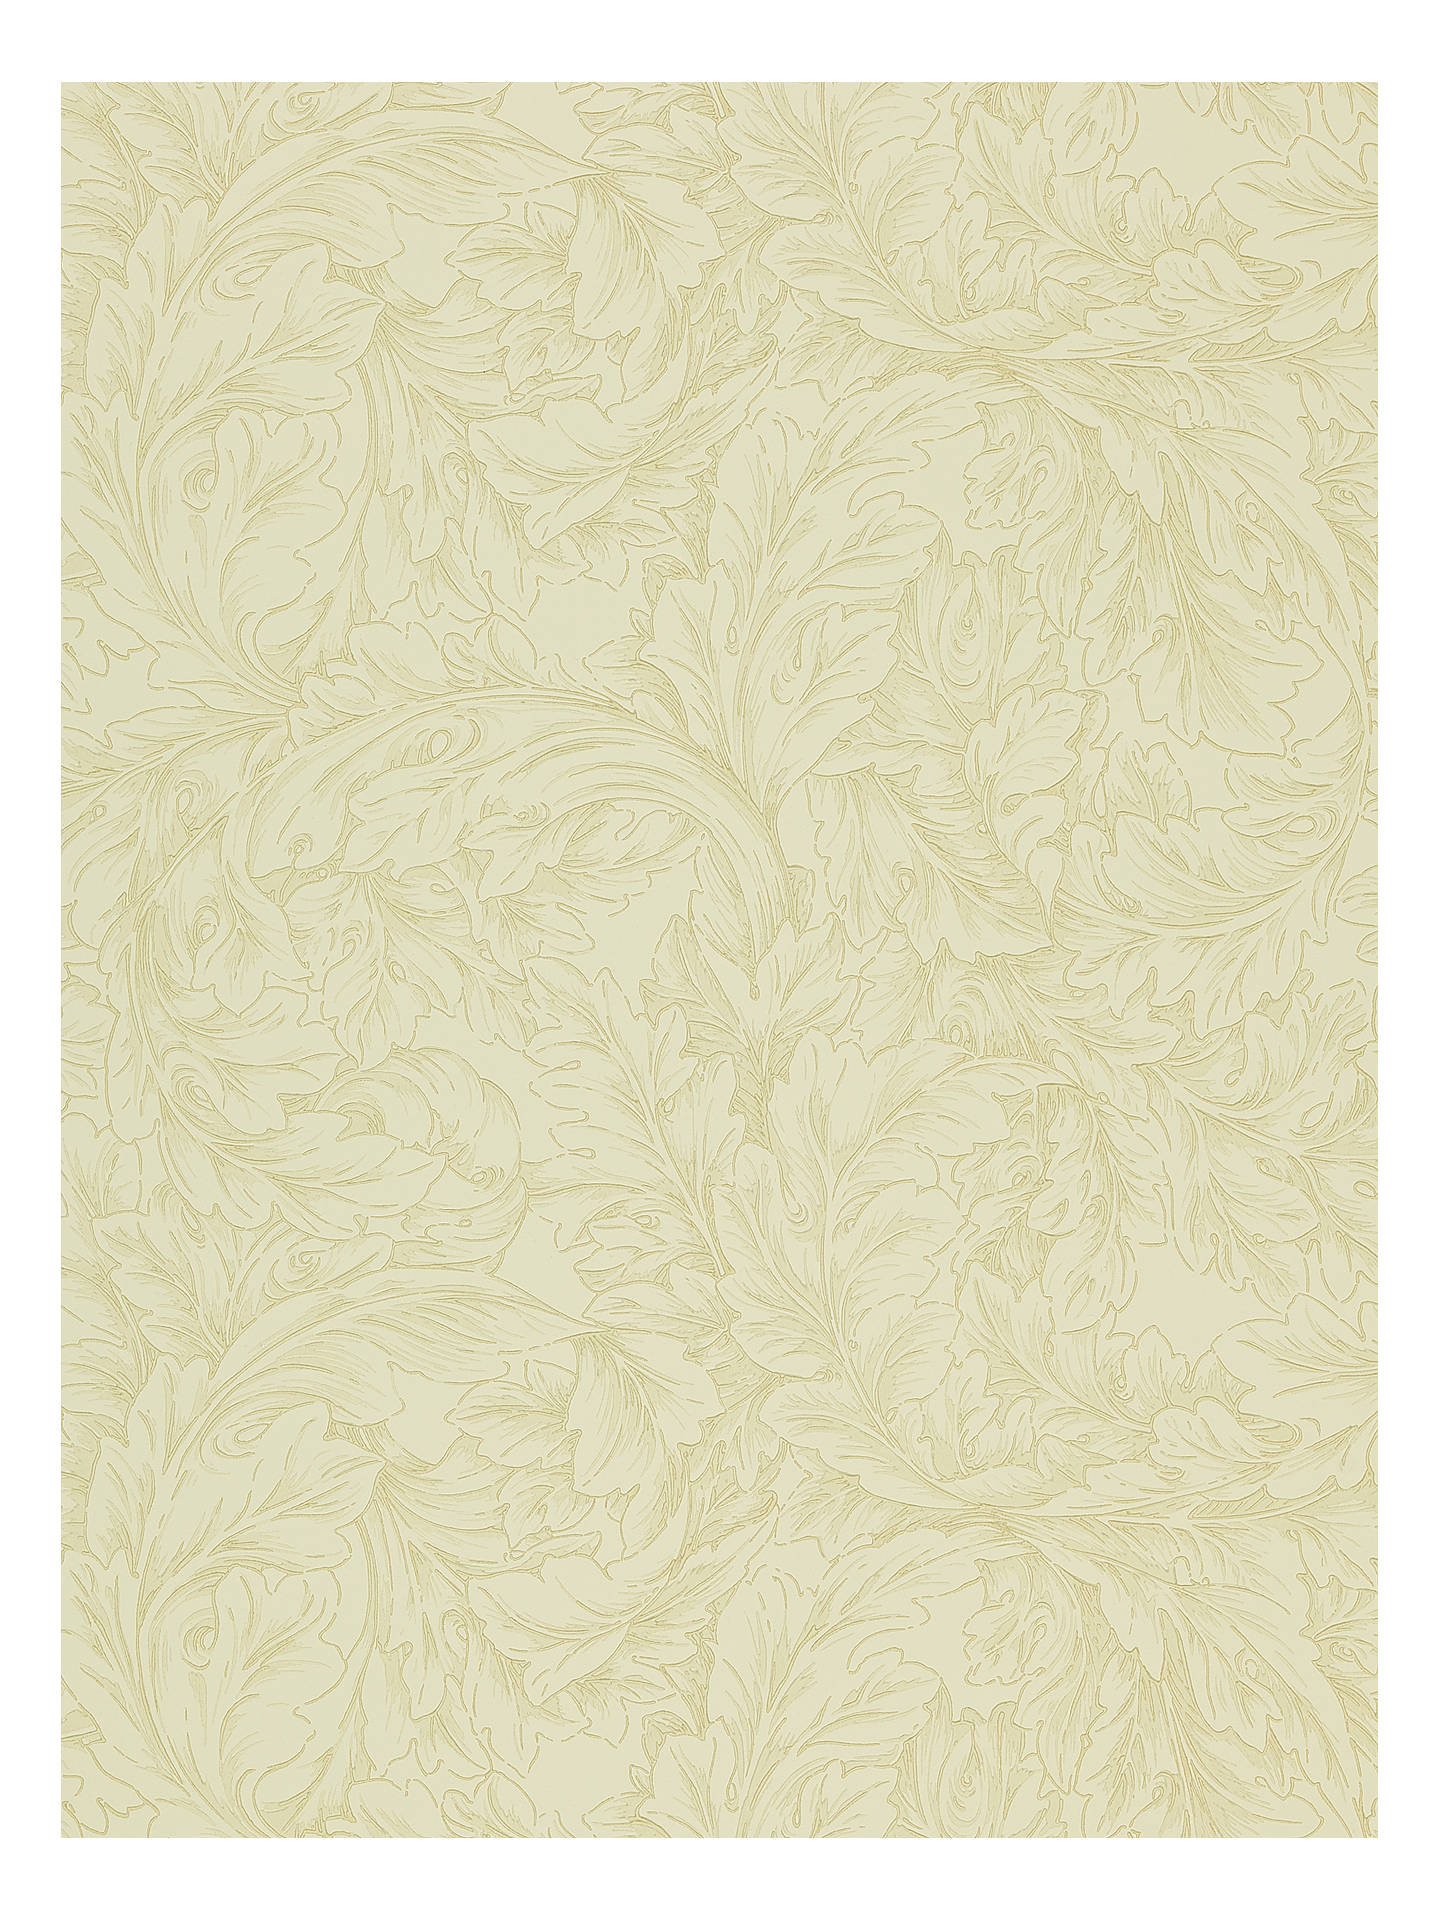 Buy Morris & Co. Acanthus Scroll Wallpaper, Parchment / Hemp, DMCW210404 Online at